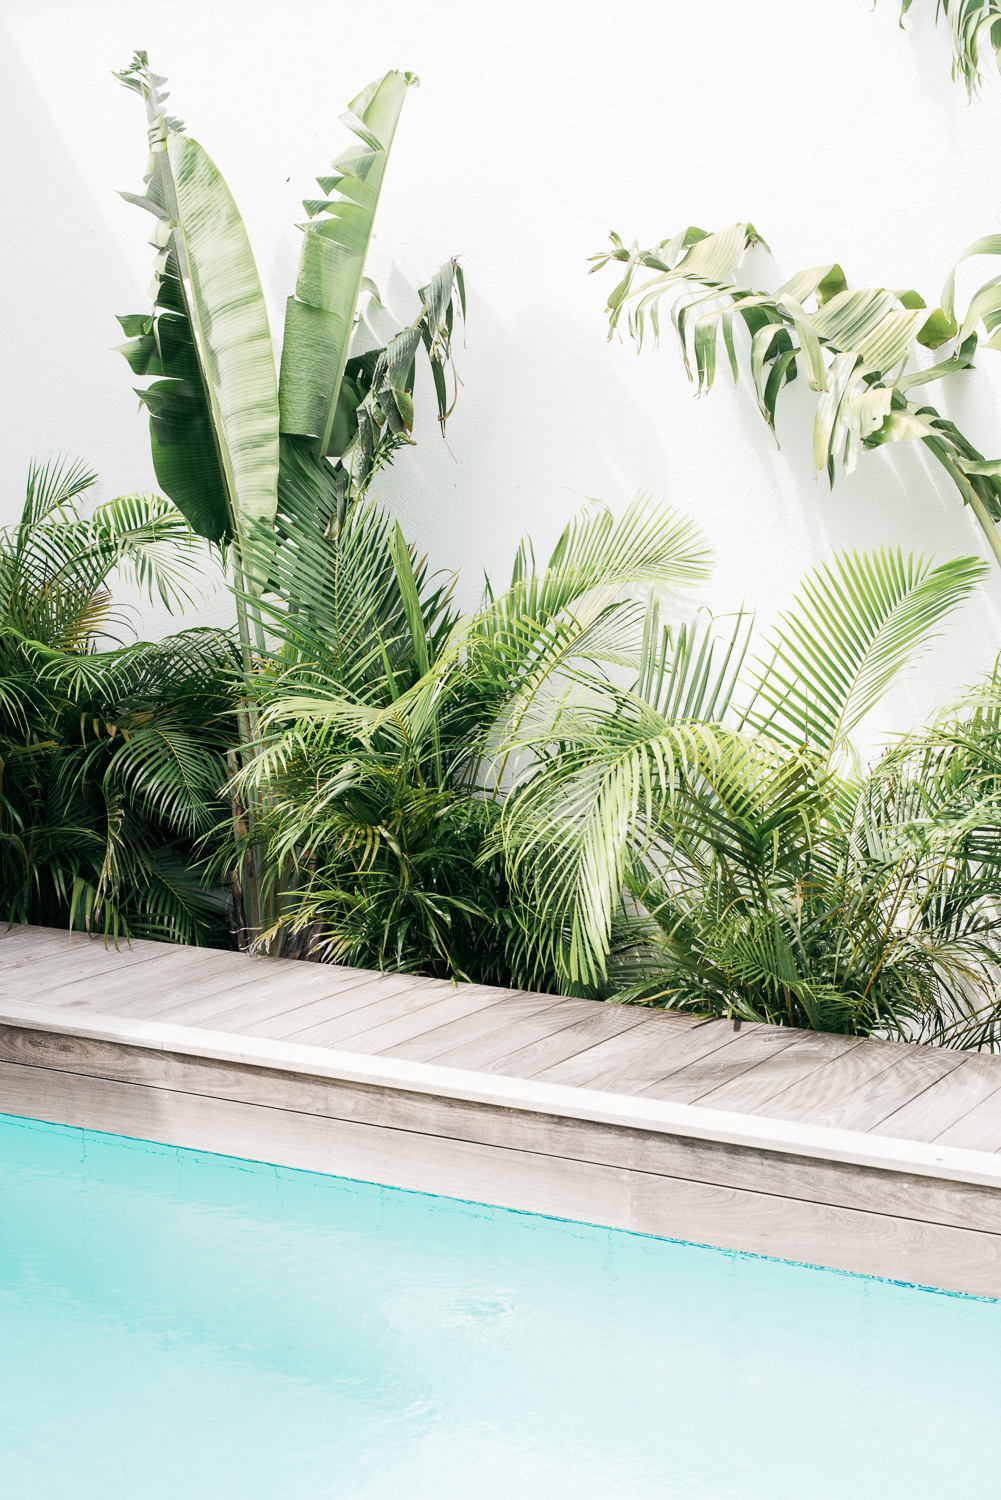 ilaria fatone - summer-mood inspirations - lush vegetation around pool